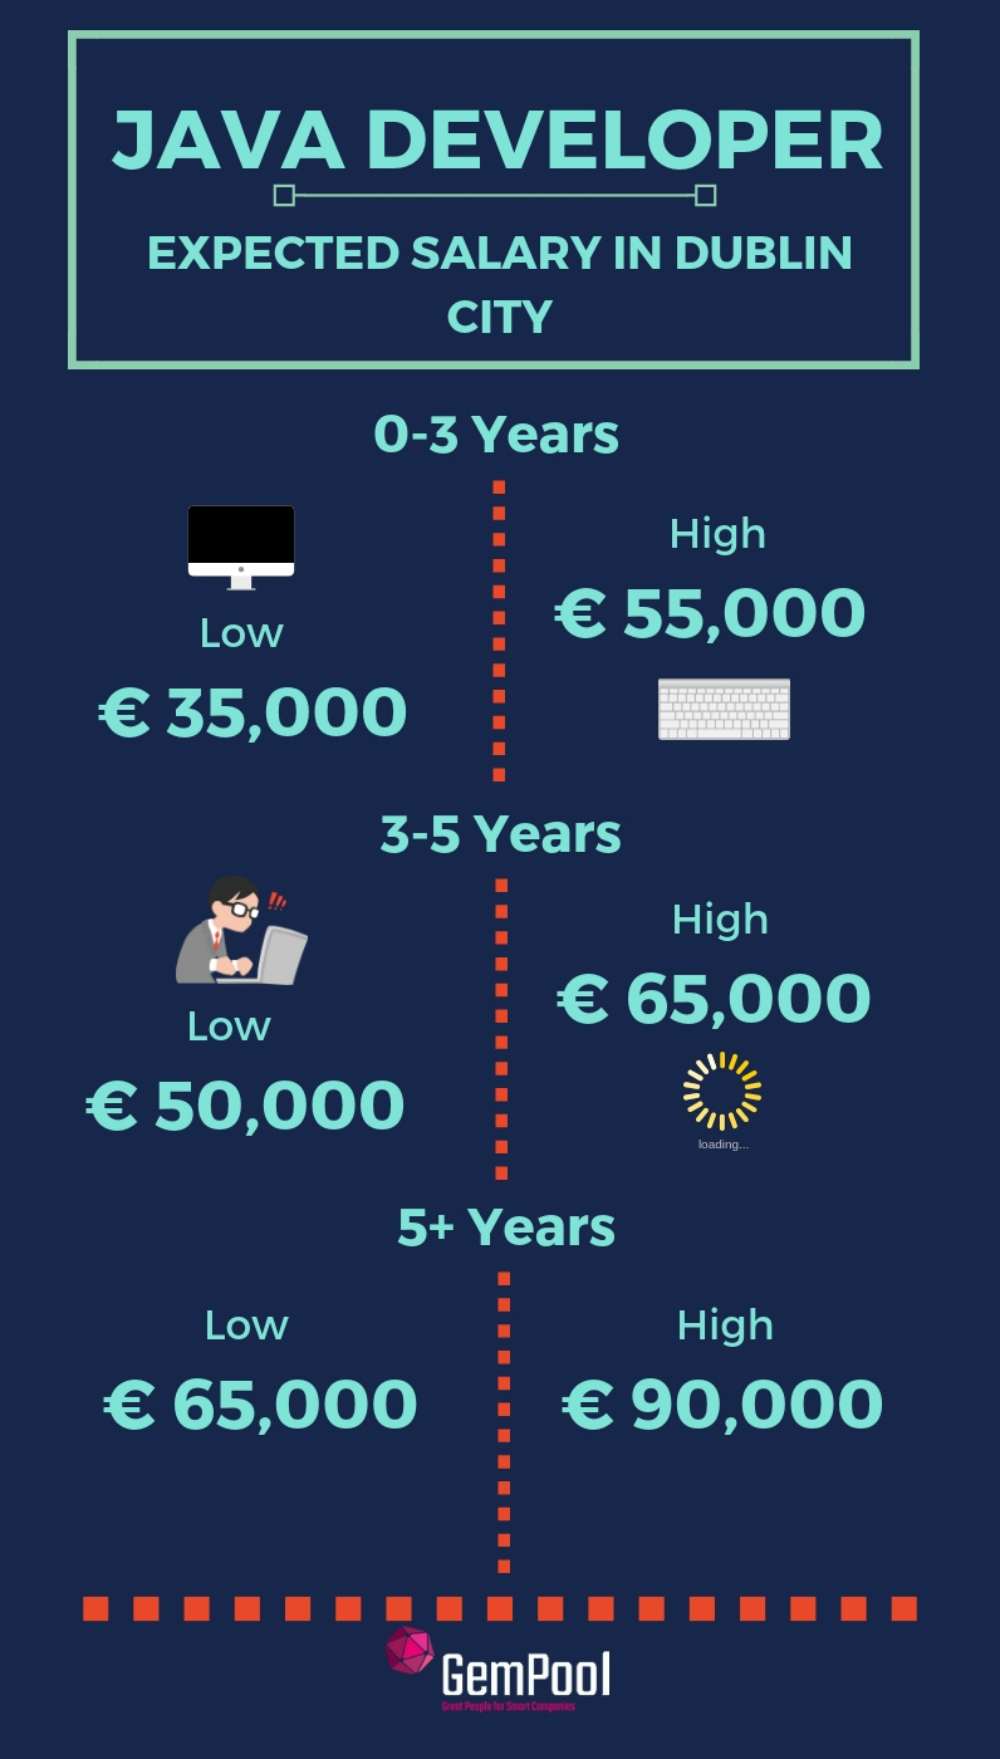 Java Developers Salary in Ireland